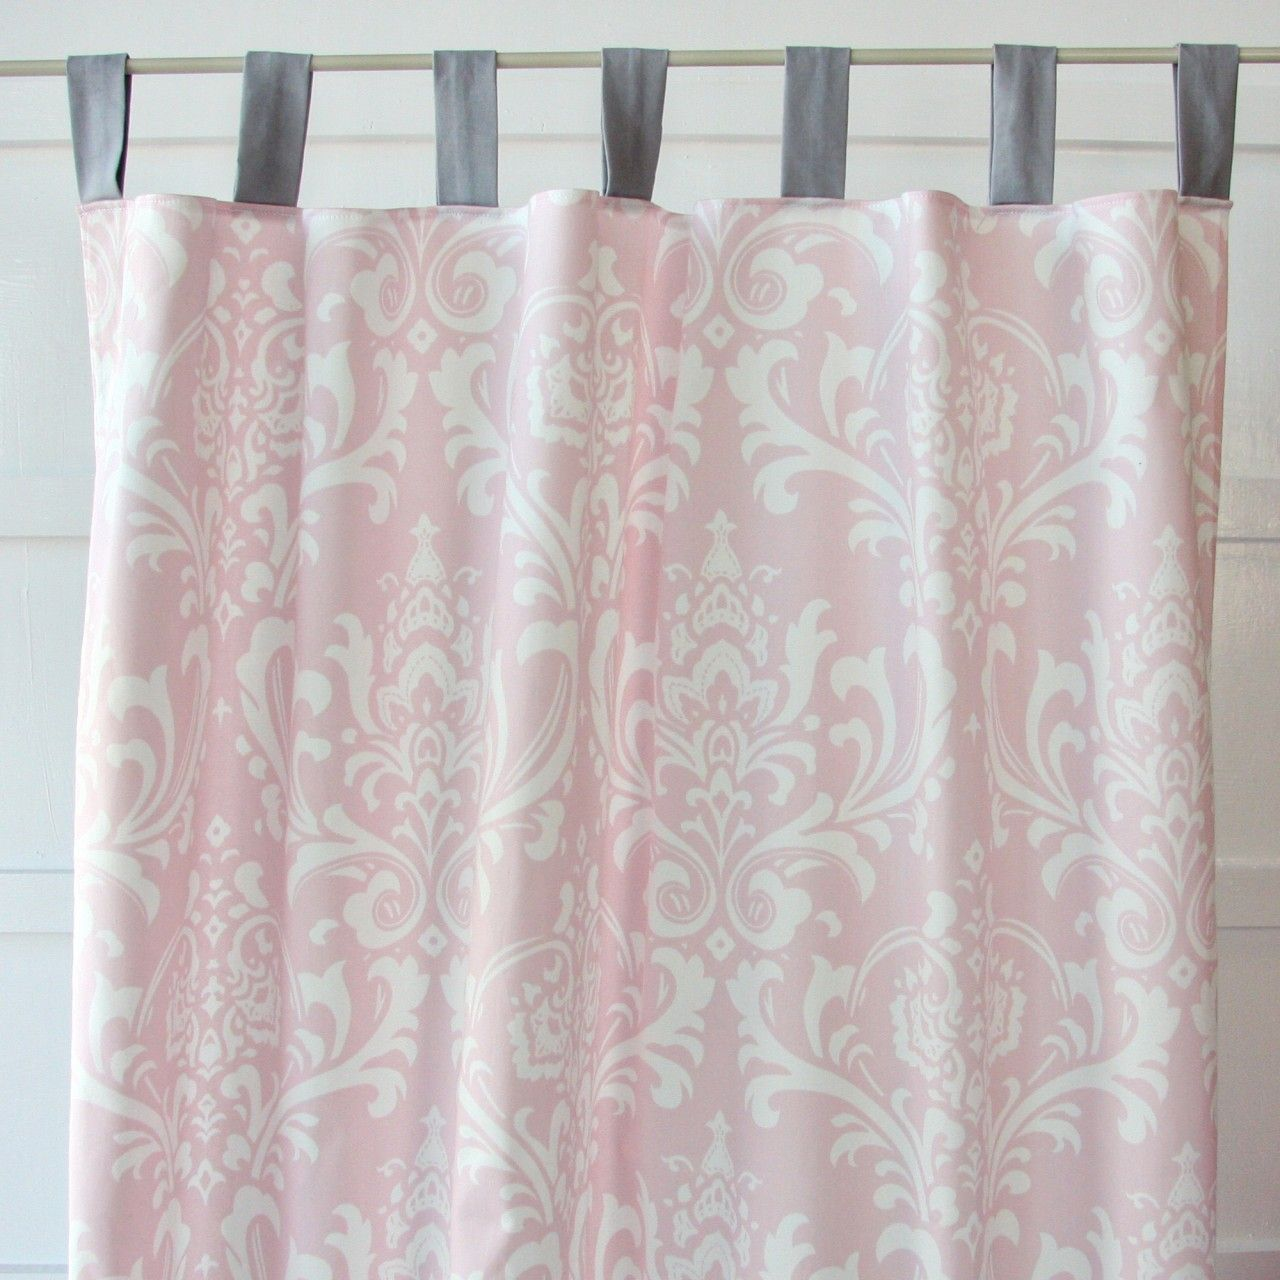 tips ruffled ottoman impressive sheer choosing curtain ideas chair white and nursery pink curtains with for round baby